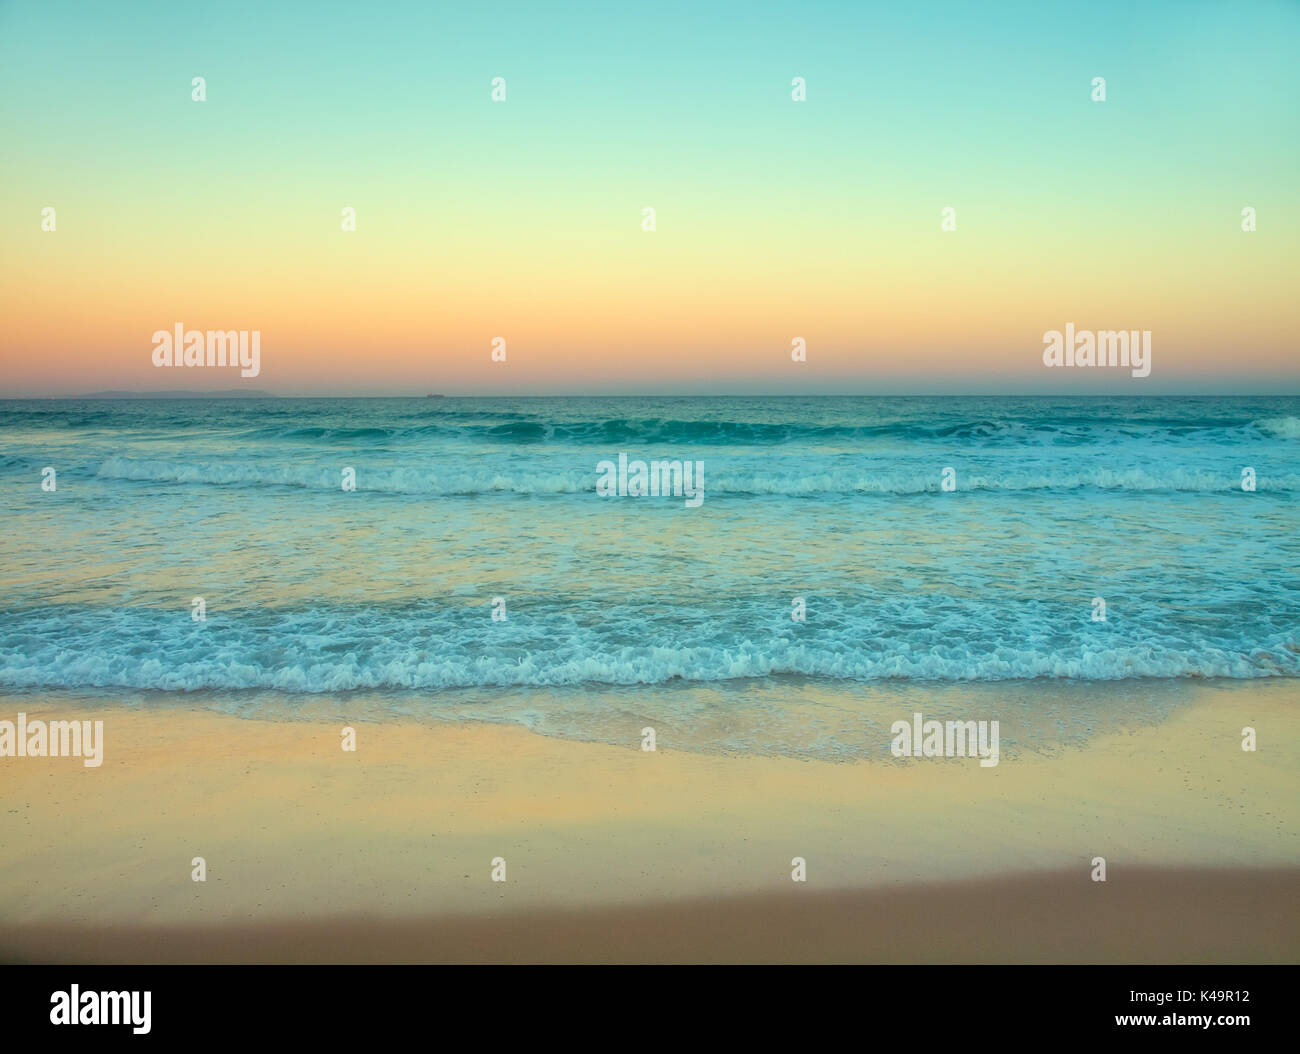 Retro Styled, Instant Camera Style Photo Of A Beach During Sunrise, Dawn - Stock Image